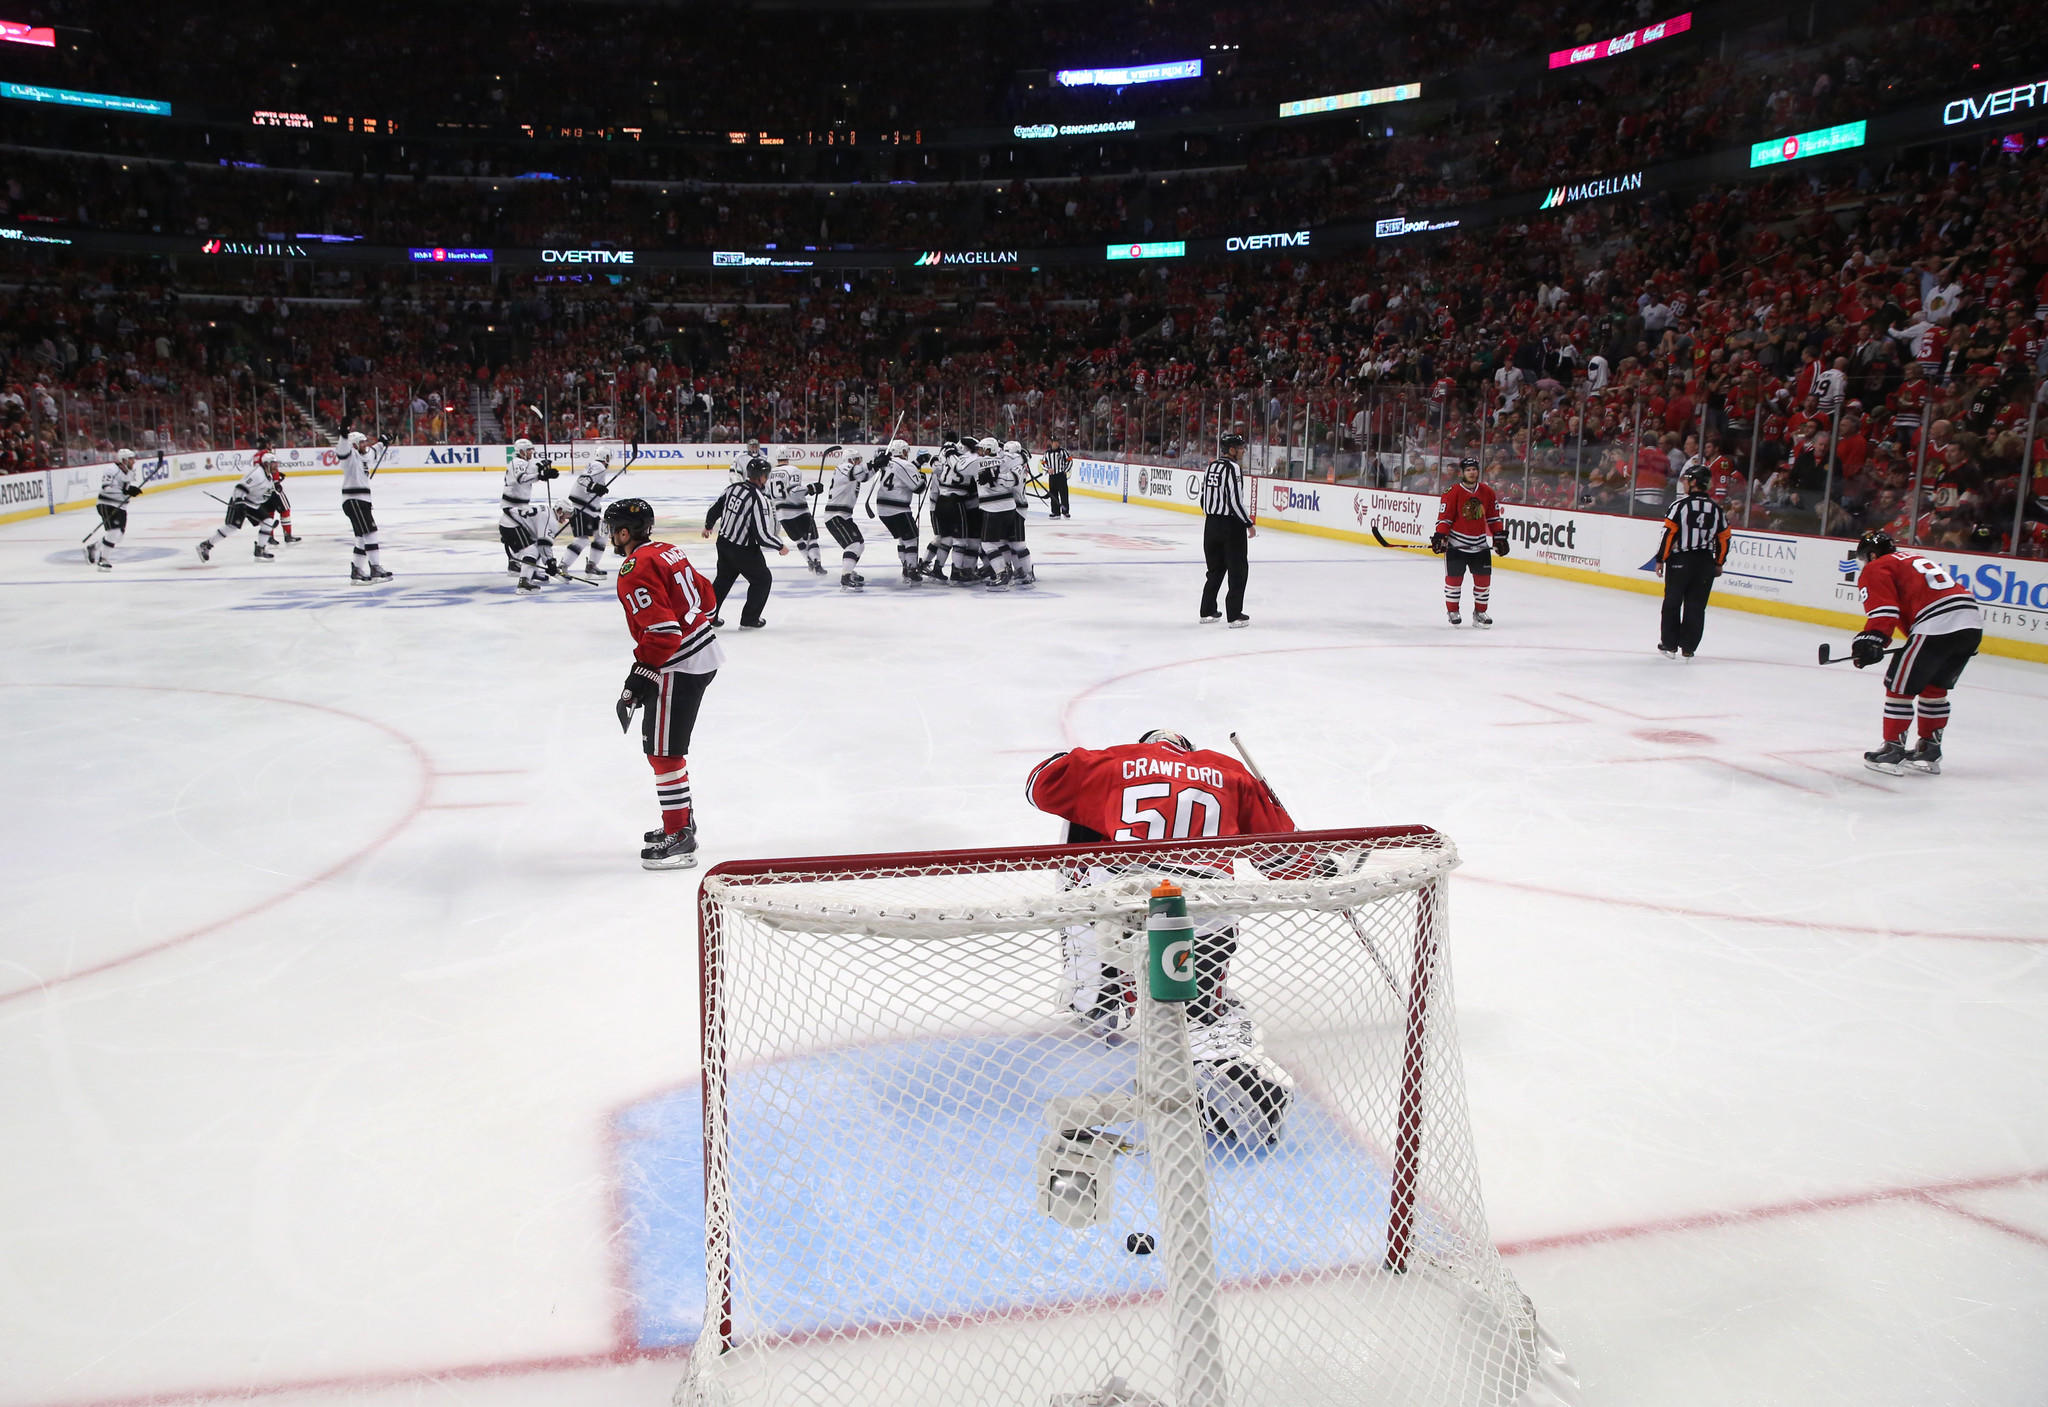 Corey Crawford kneels on the ice as the Los Angeles Kings celebrate in overtime.